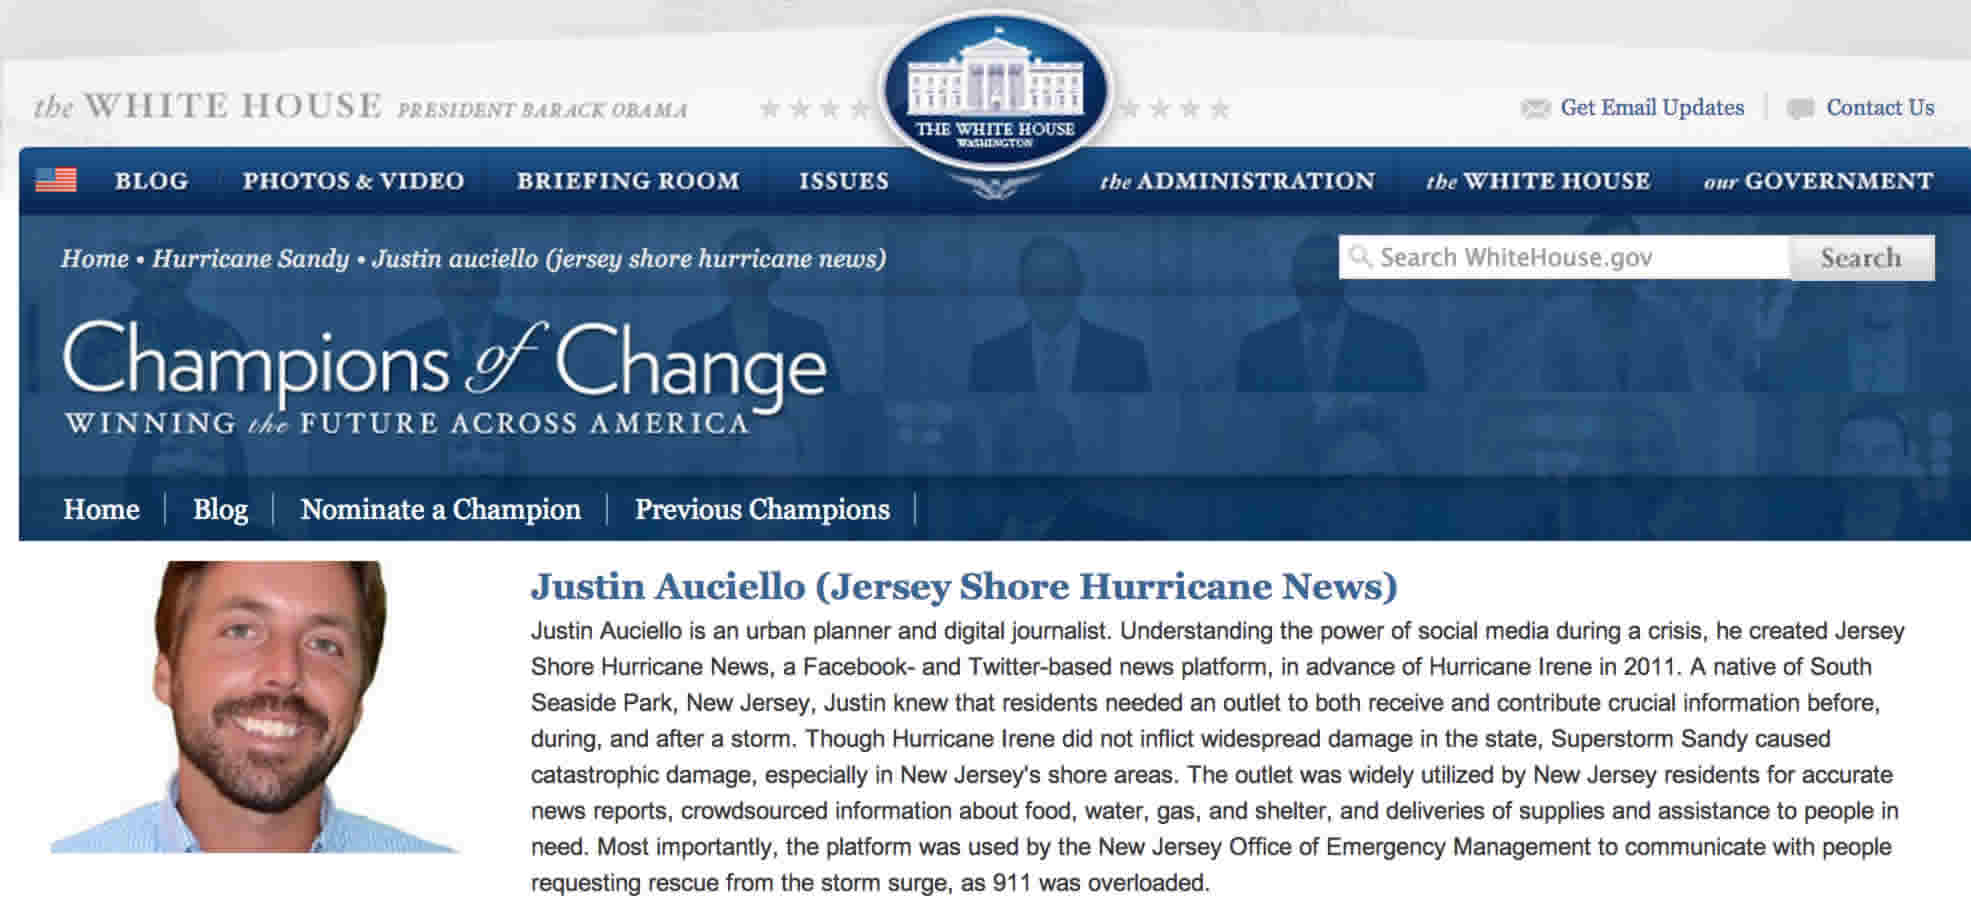 Justin Auciello was recognized with a Champions of Change award from the White House.